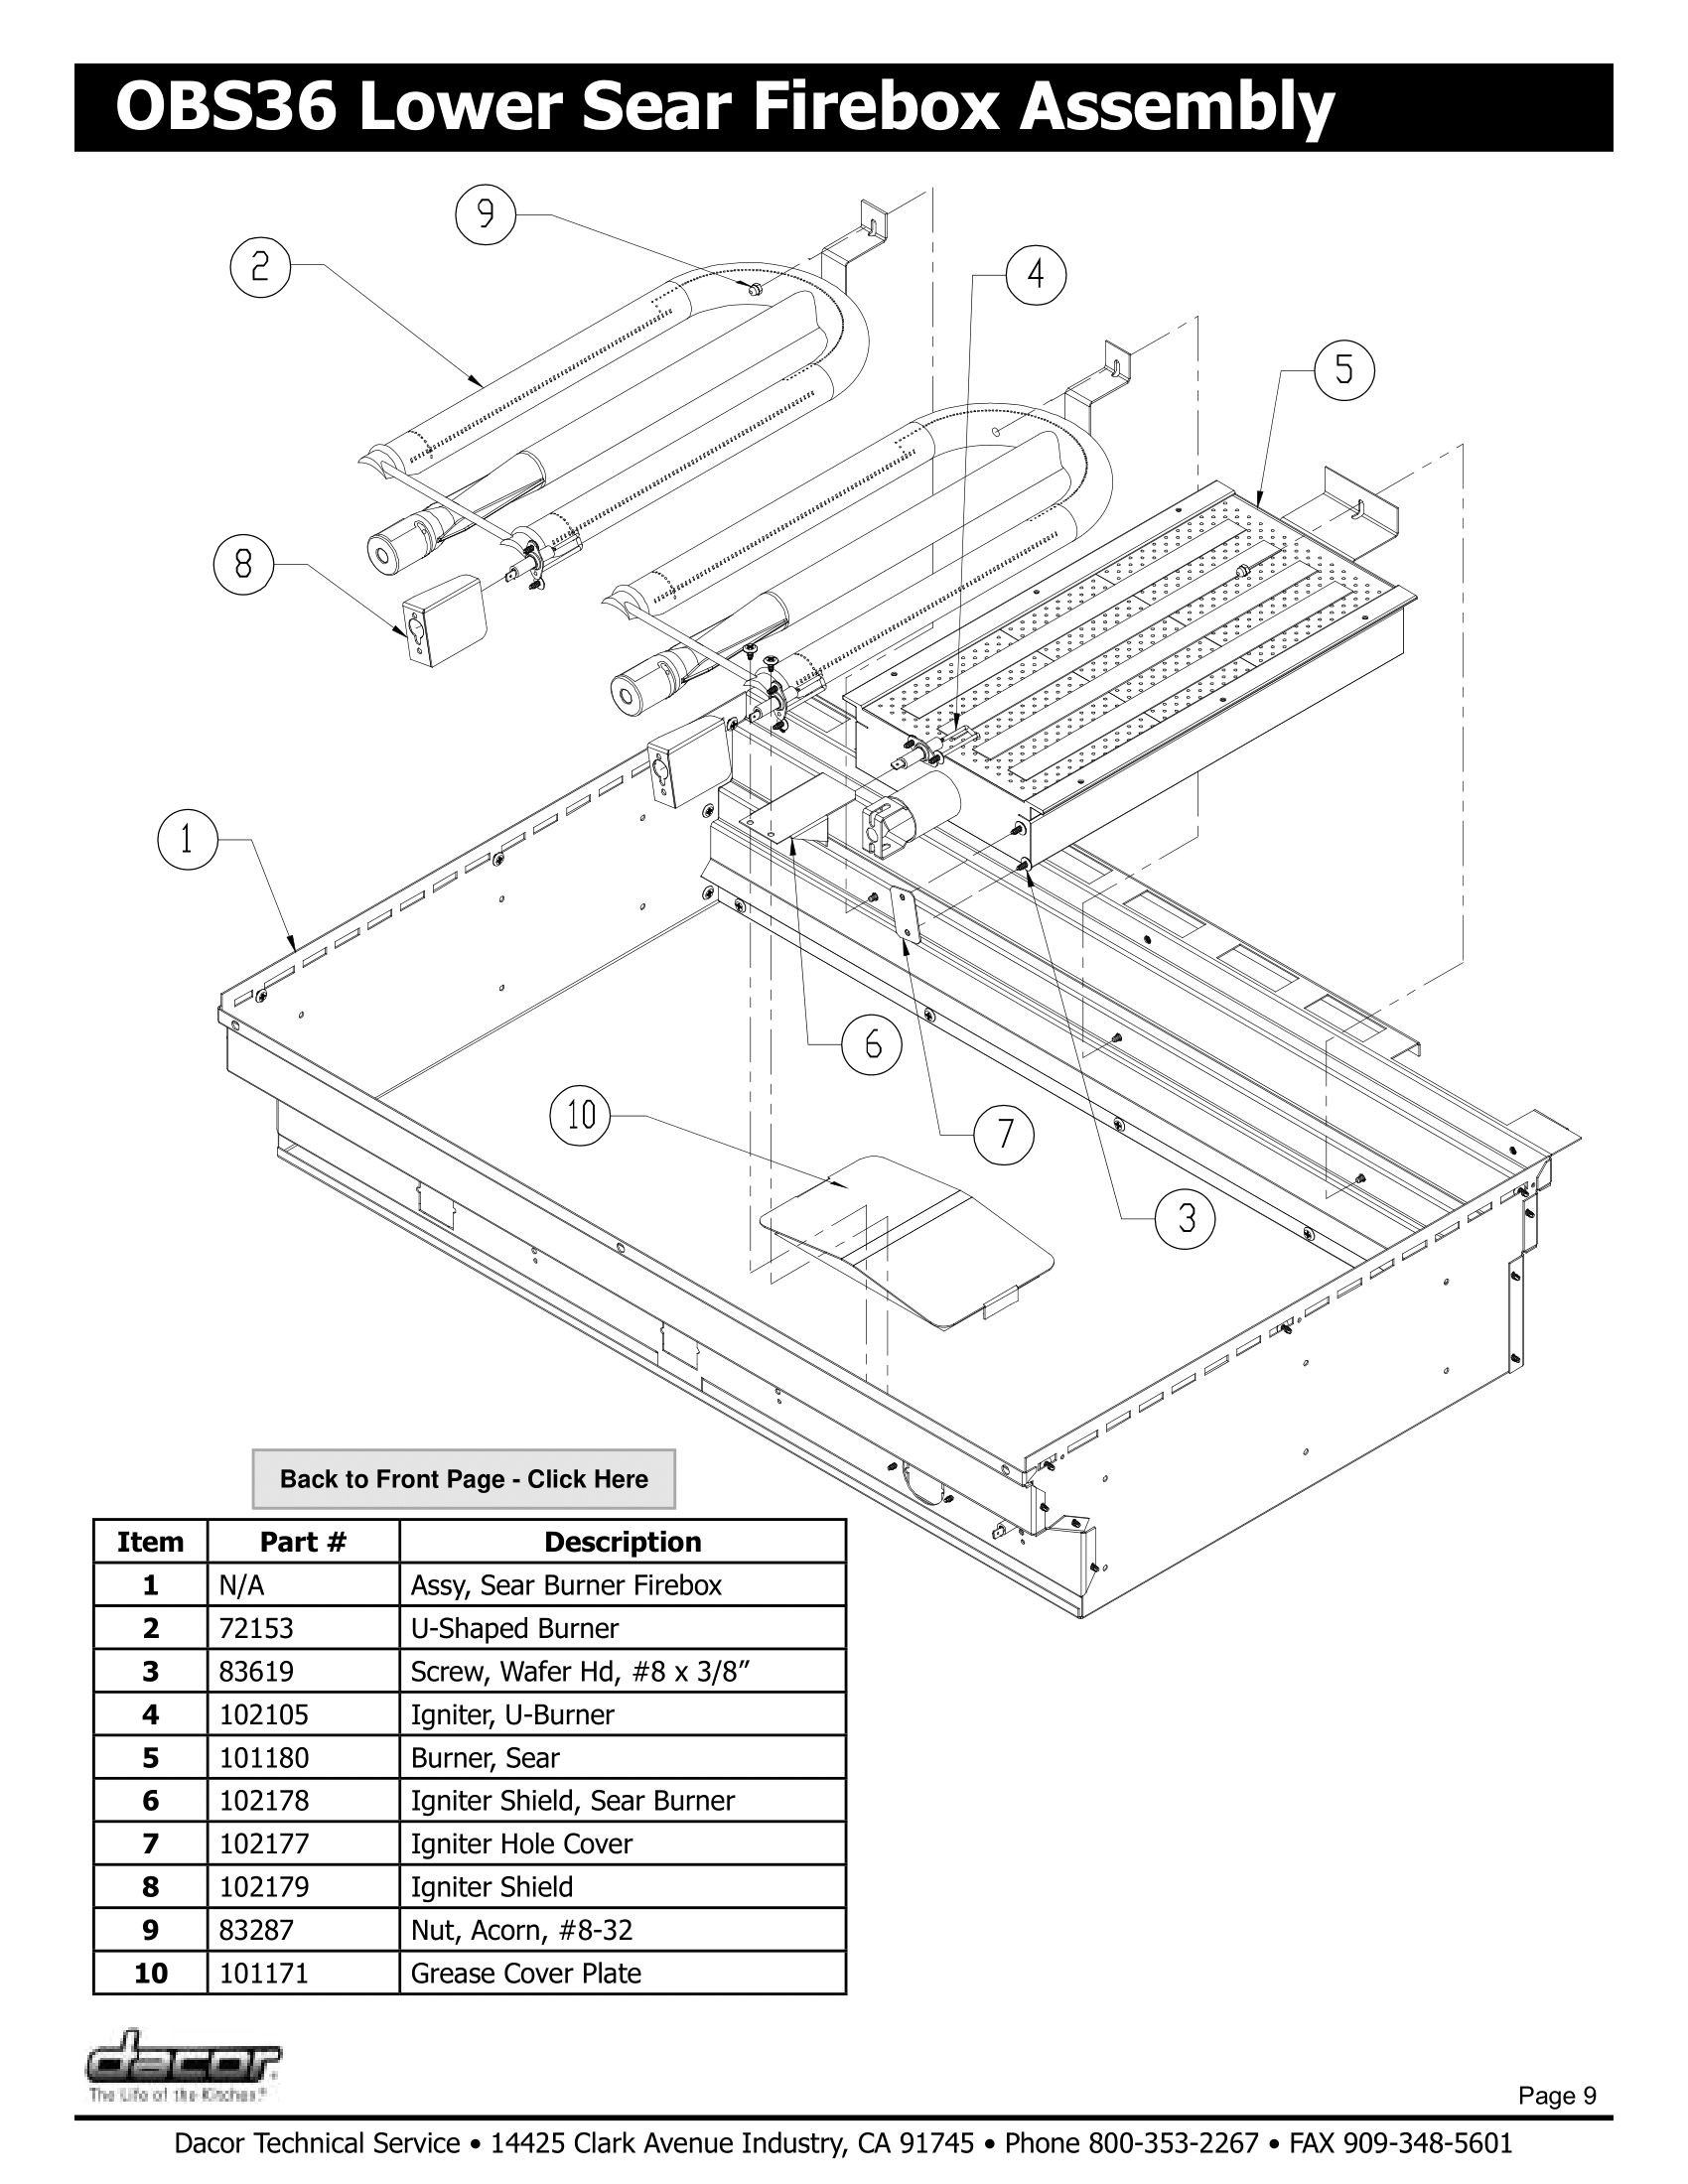 Dacor OBS36 Lower Sear Firebox Assembly Schematic